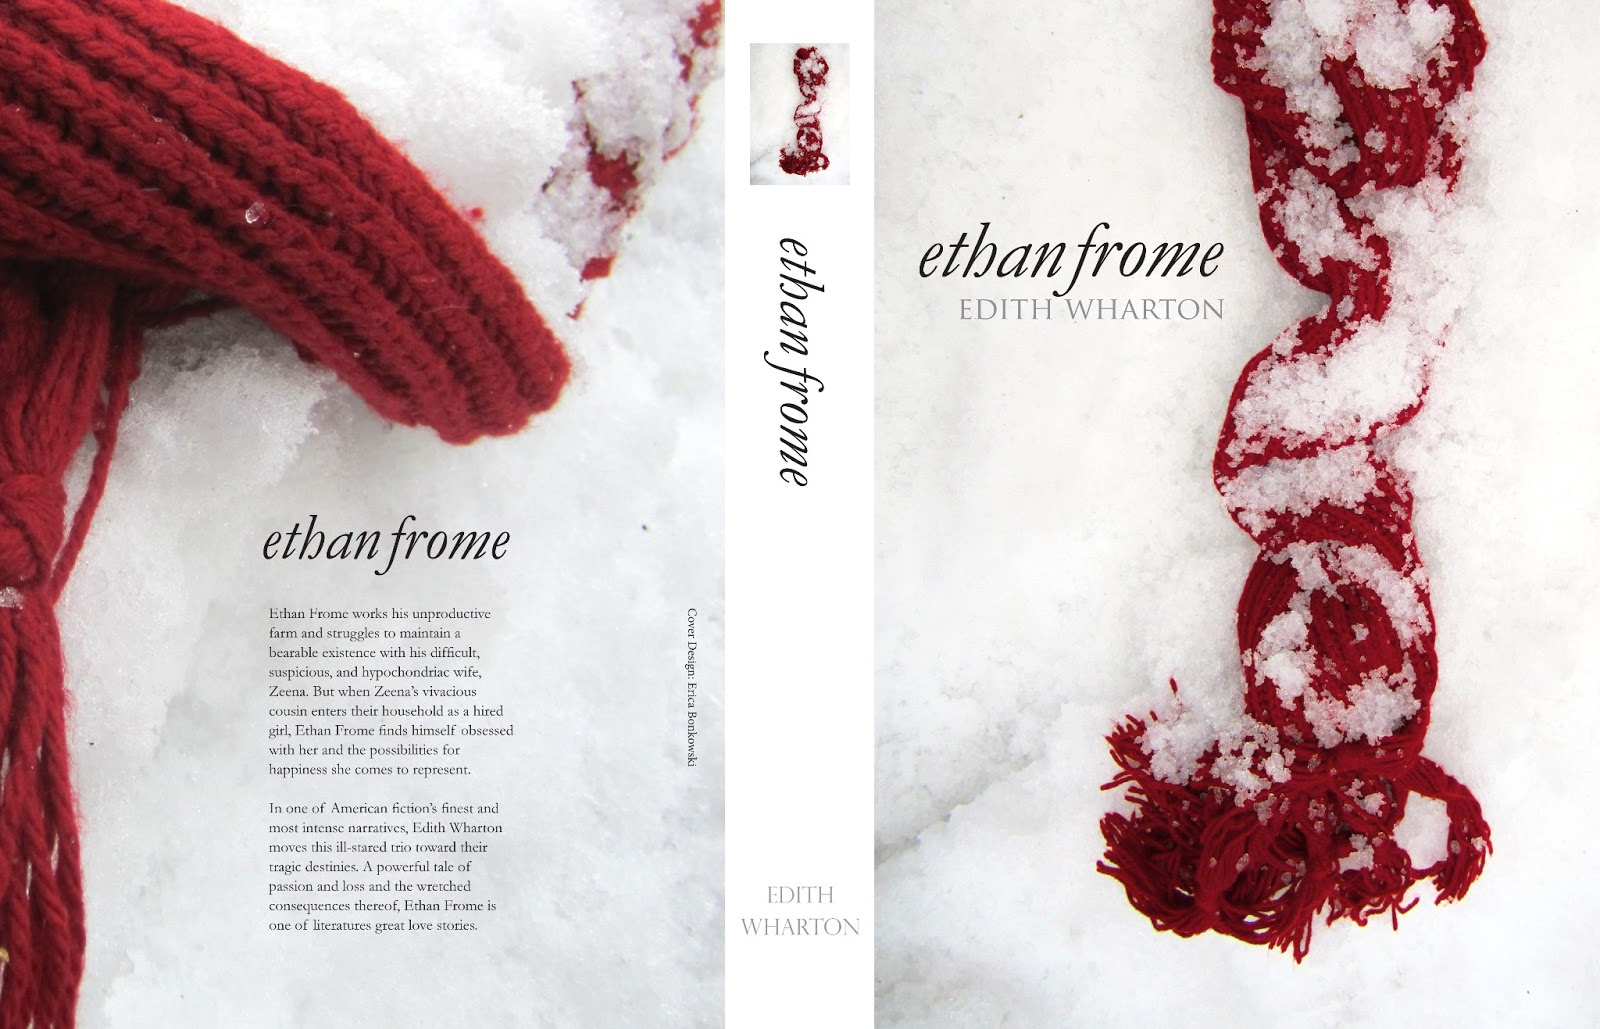 an introduction to the comparison of ethan frome and lester burnham And more online easily share your a biography of eva duarte de peron de a comparison of ethan frome and lester burnham eva an introduction to the.